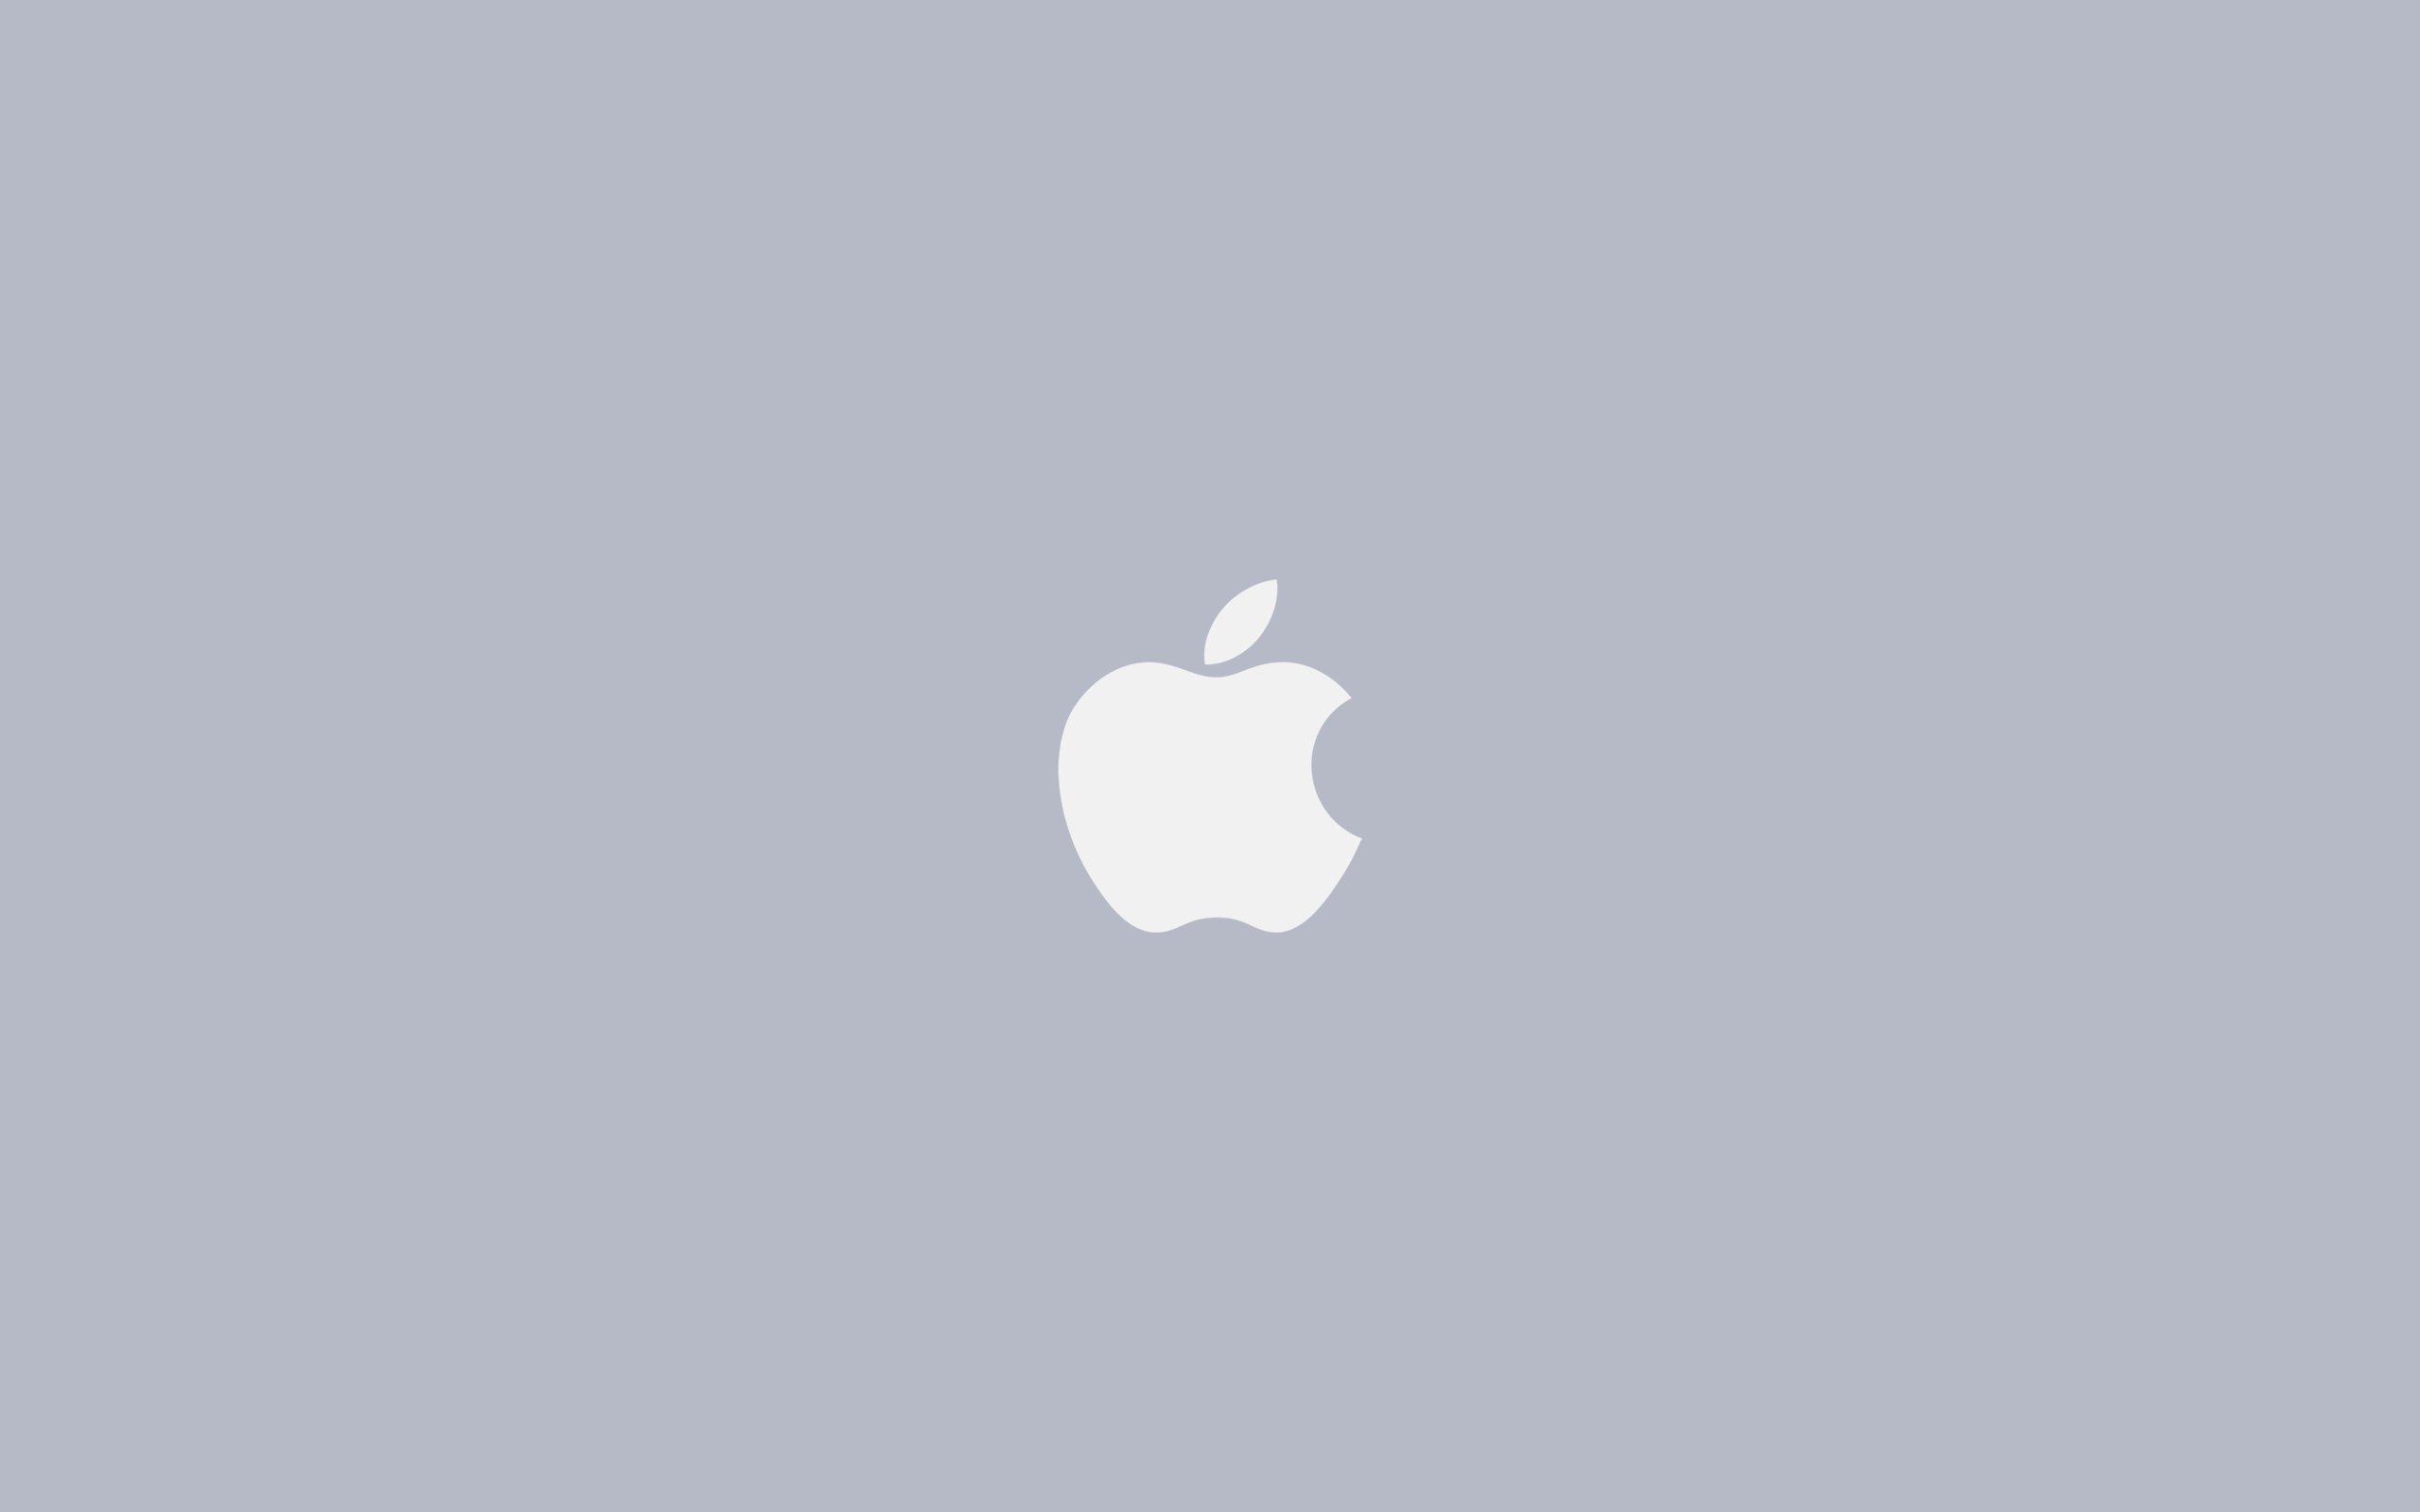 Grey Apple Logo Wallpaper